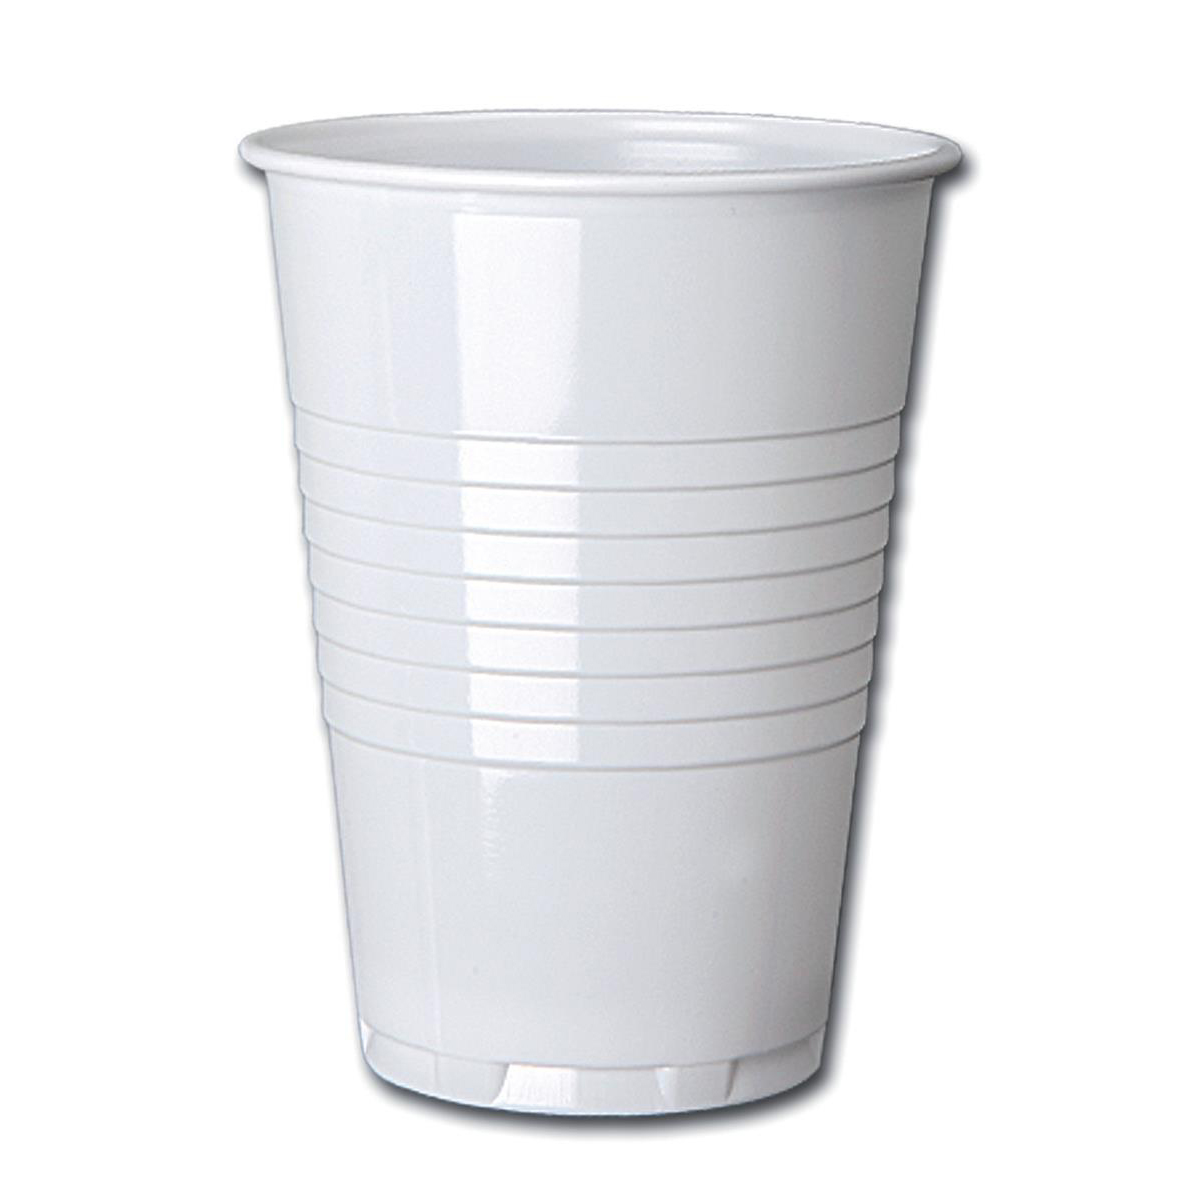 Cup for Hot Drinks Plastic for Vending Machine 7oz 207ml Tall [Pack 100]